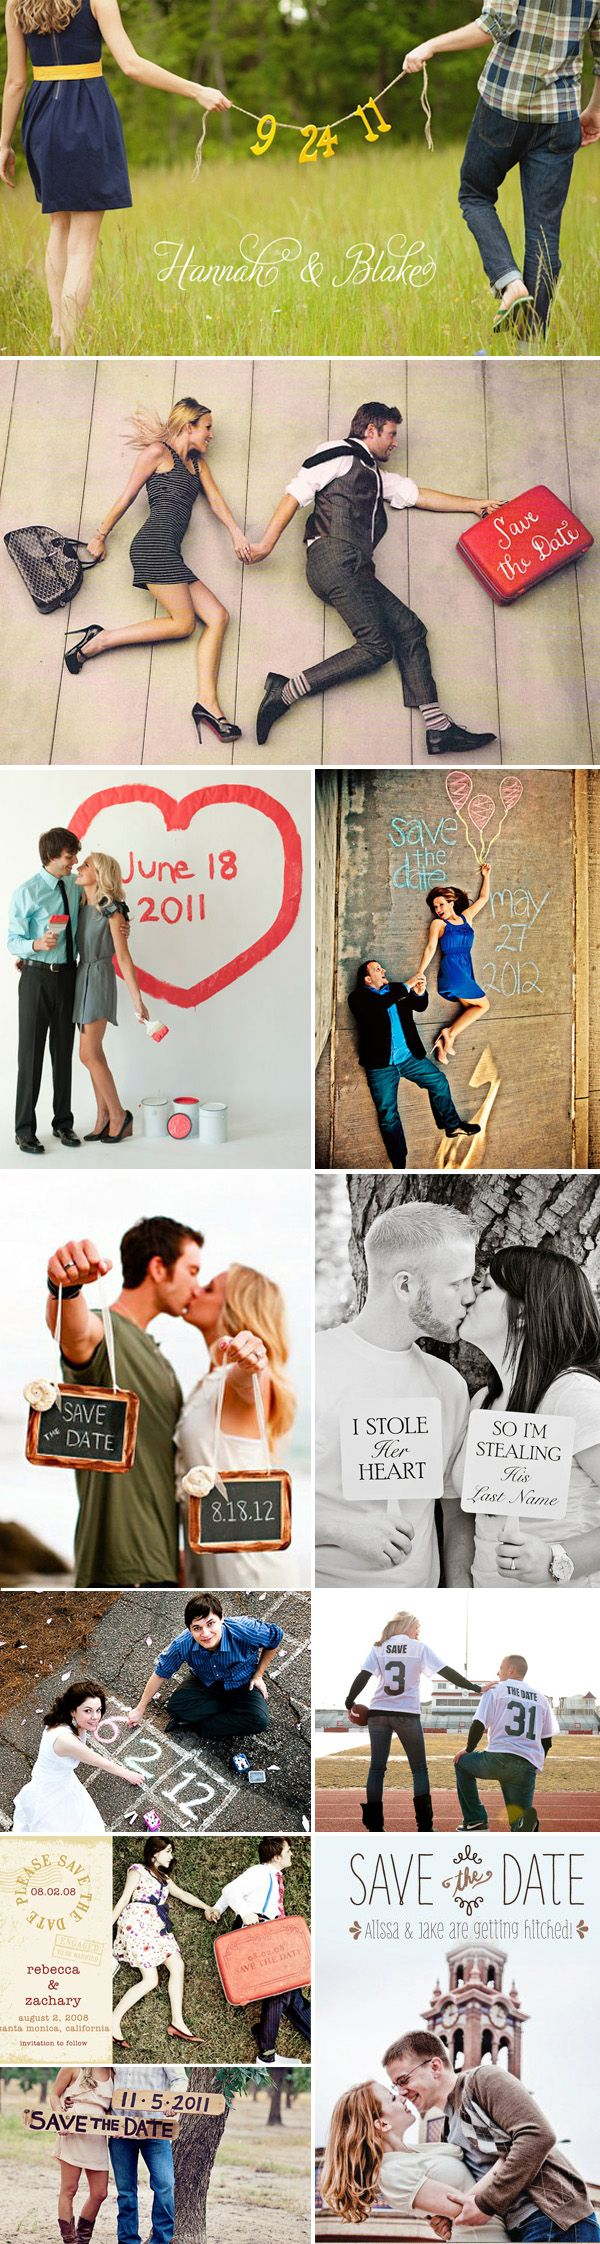 107 Creative and Unique Save the date Ideas | http://www.deerpearlflowers.com/creative-unique-save-the-date-ideas/